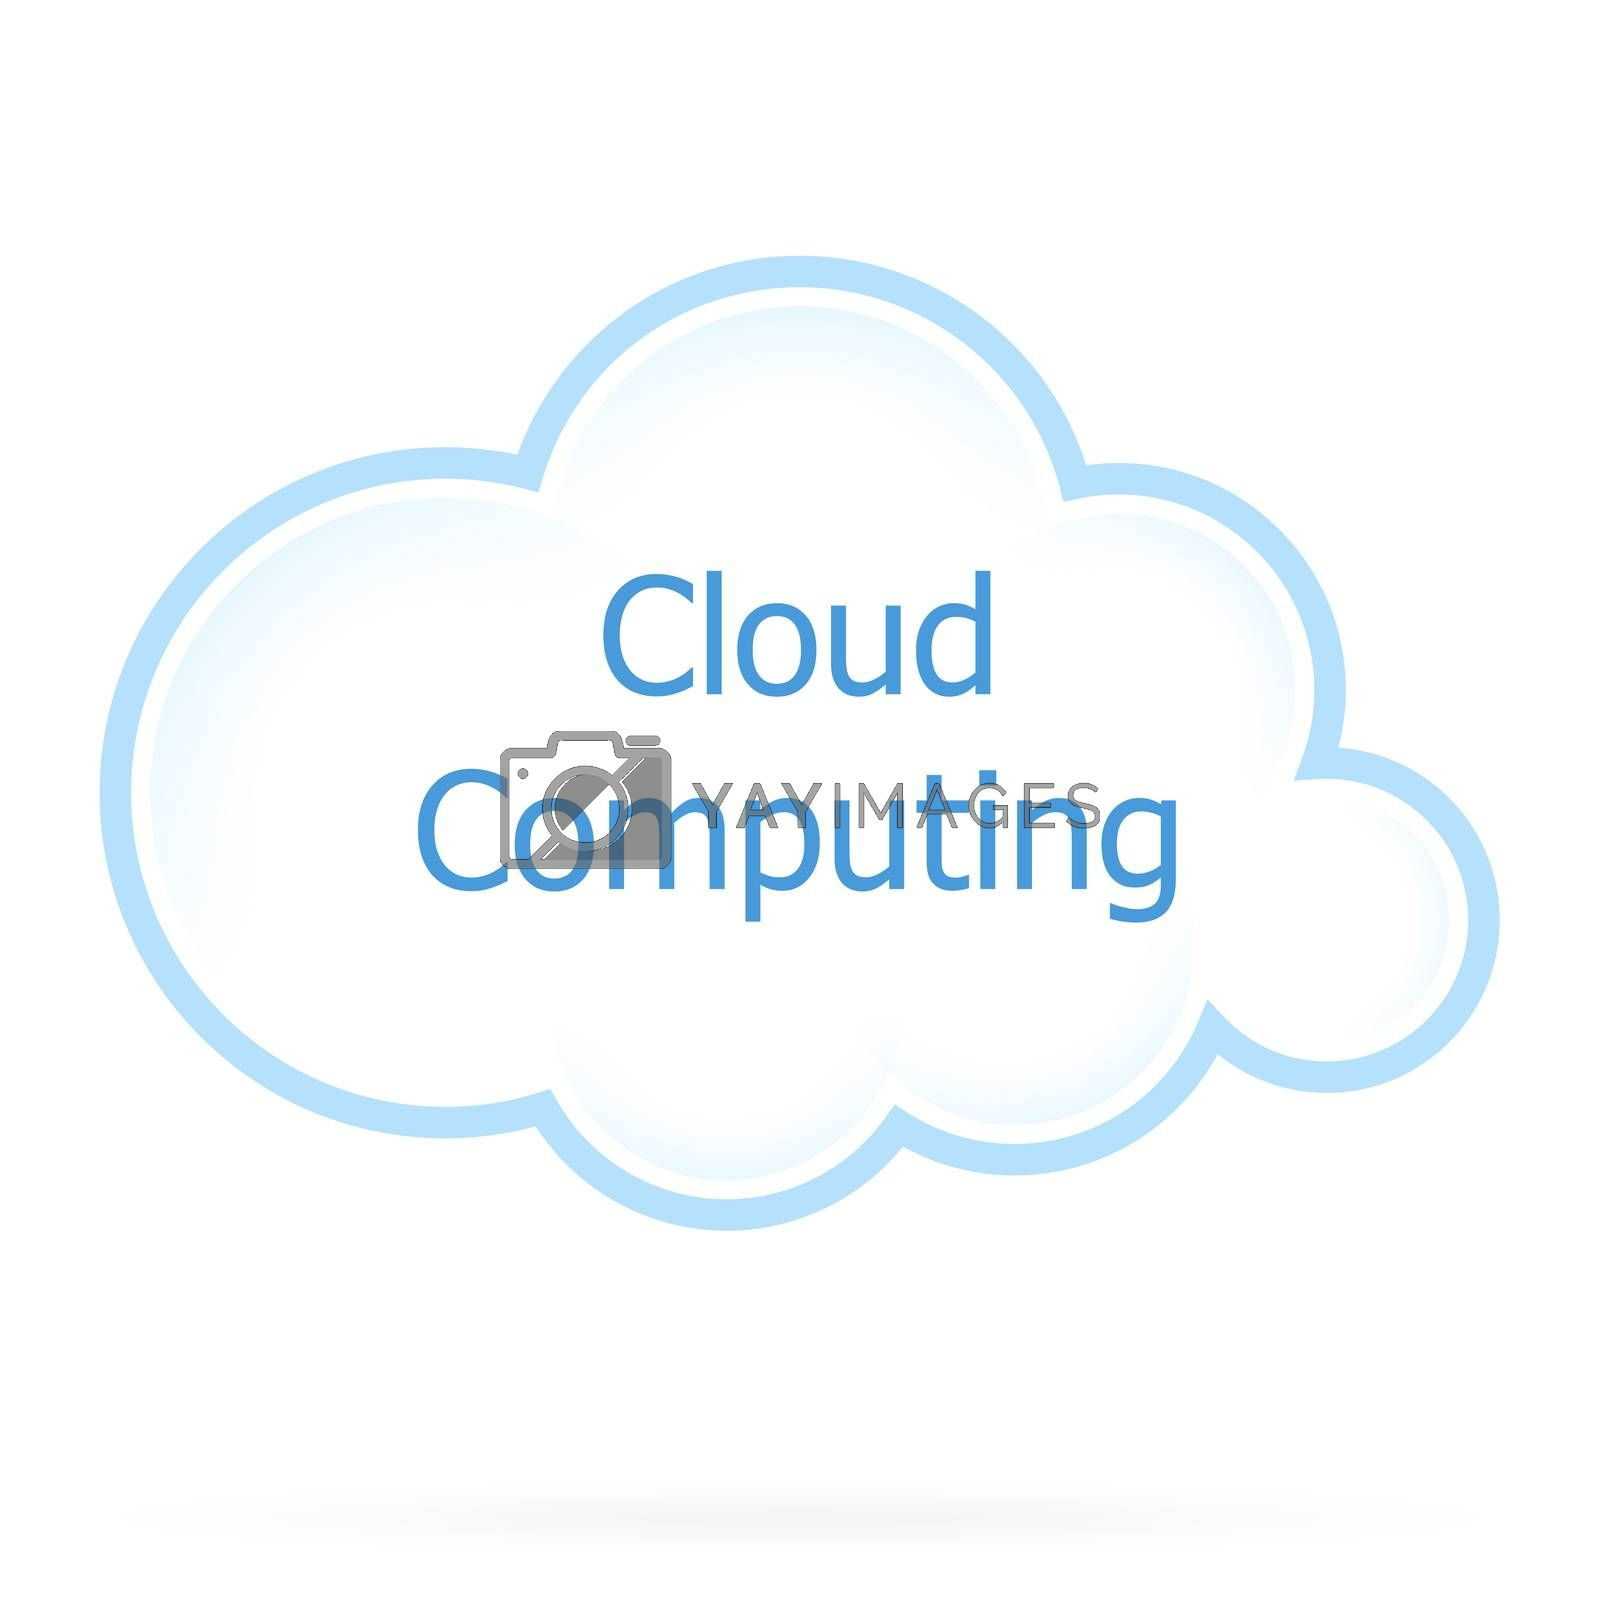 Cloud Computing Icon by WaD